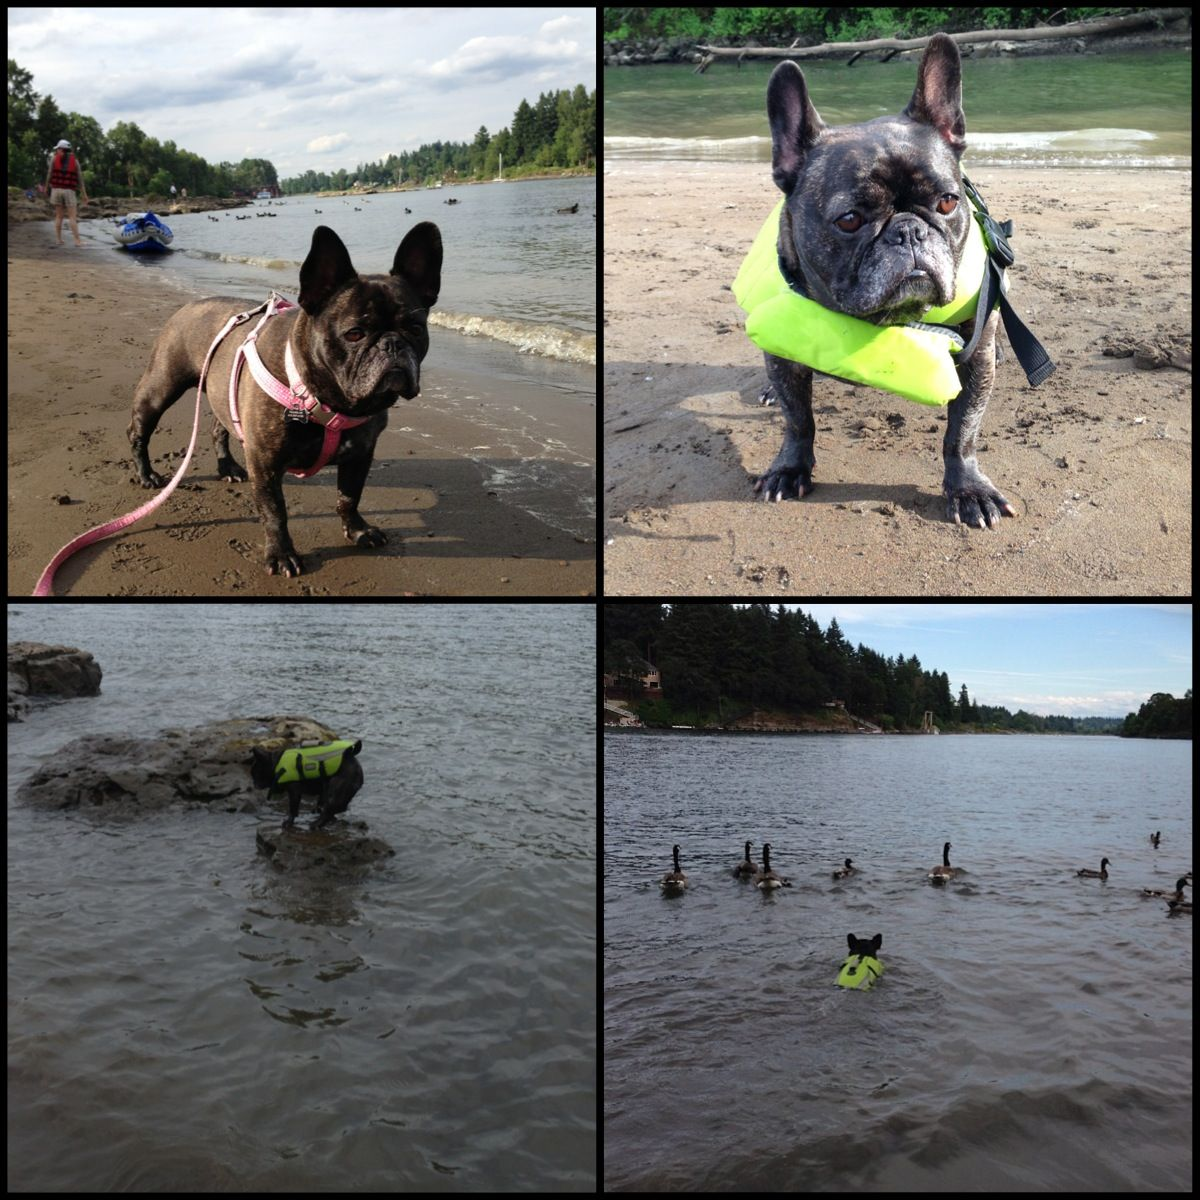 see frenchies can swim they just need a life vest lol.